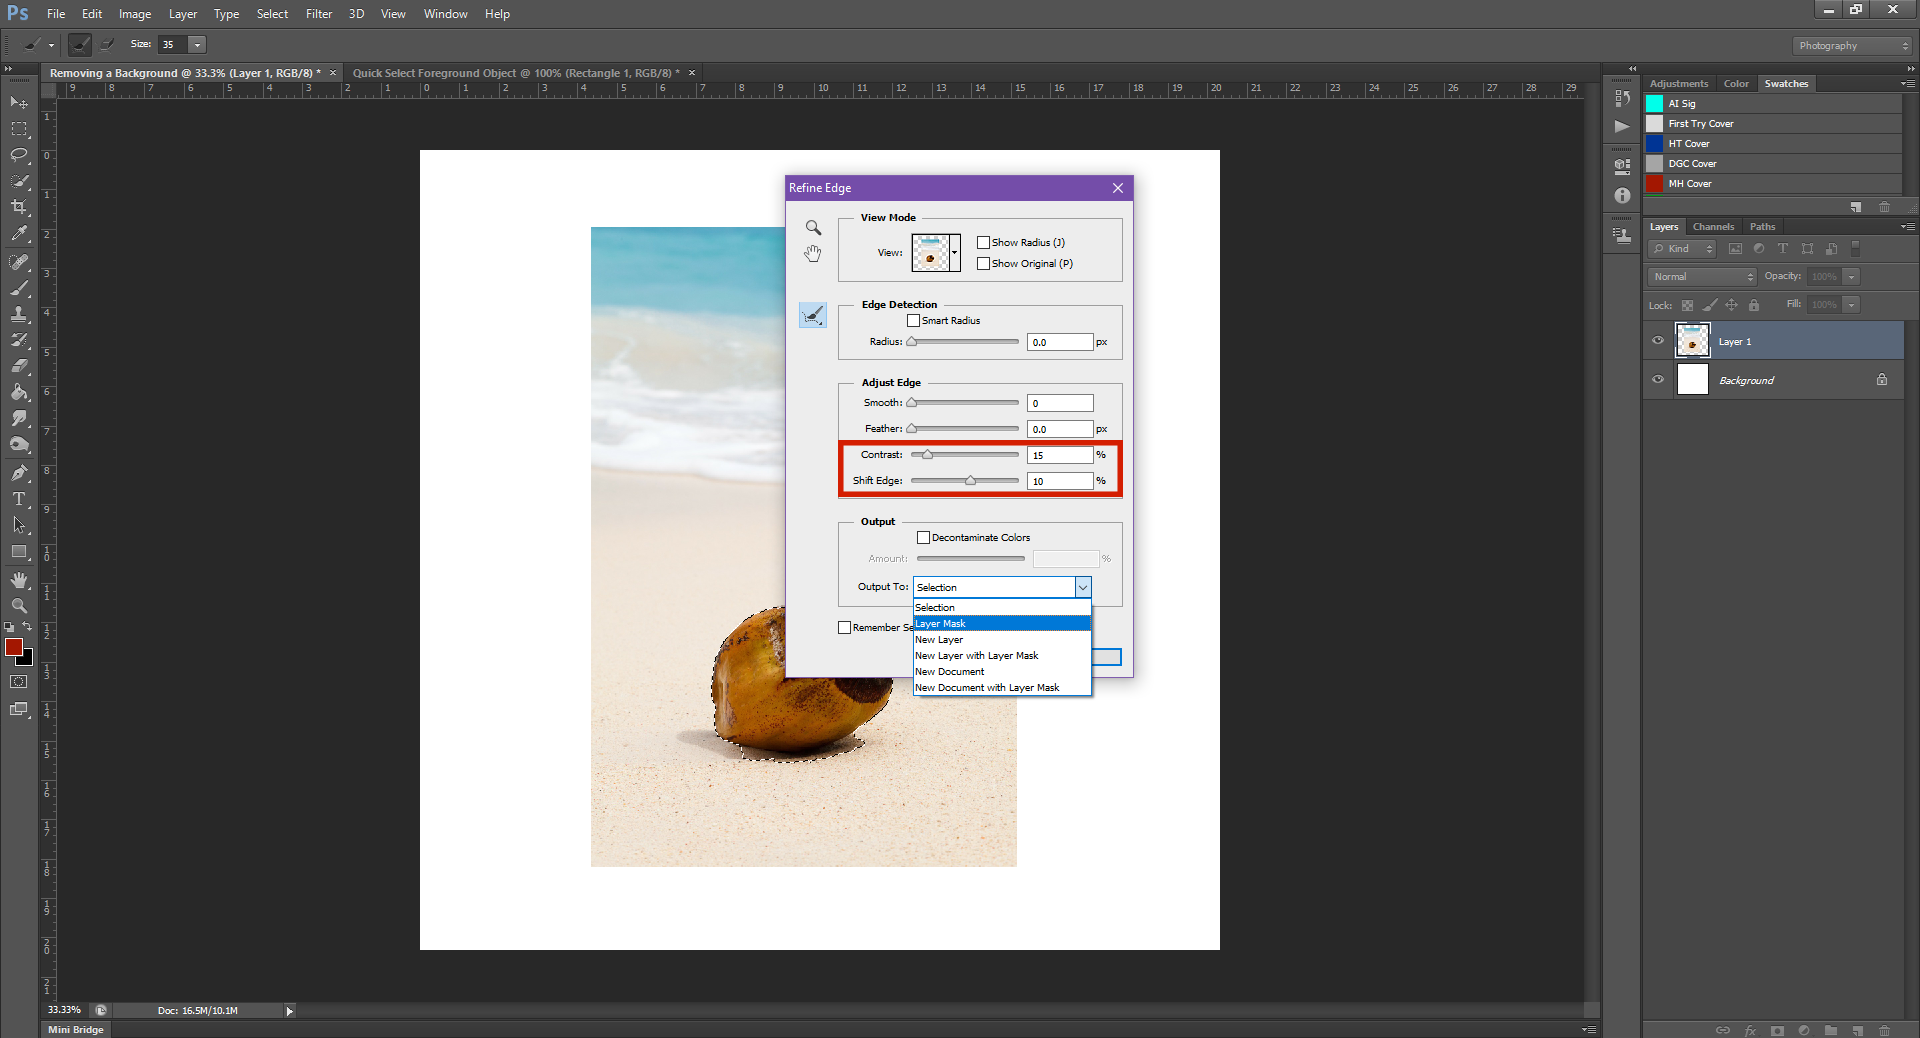 AterImber.com - Writing - Writing Tips - PHSH Effect Series - Removing a Background Object - Refine Edge Dialogue Box